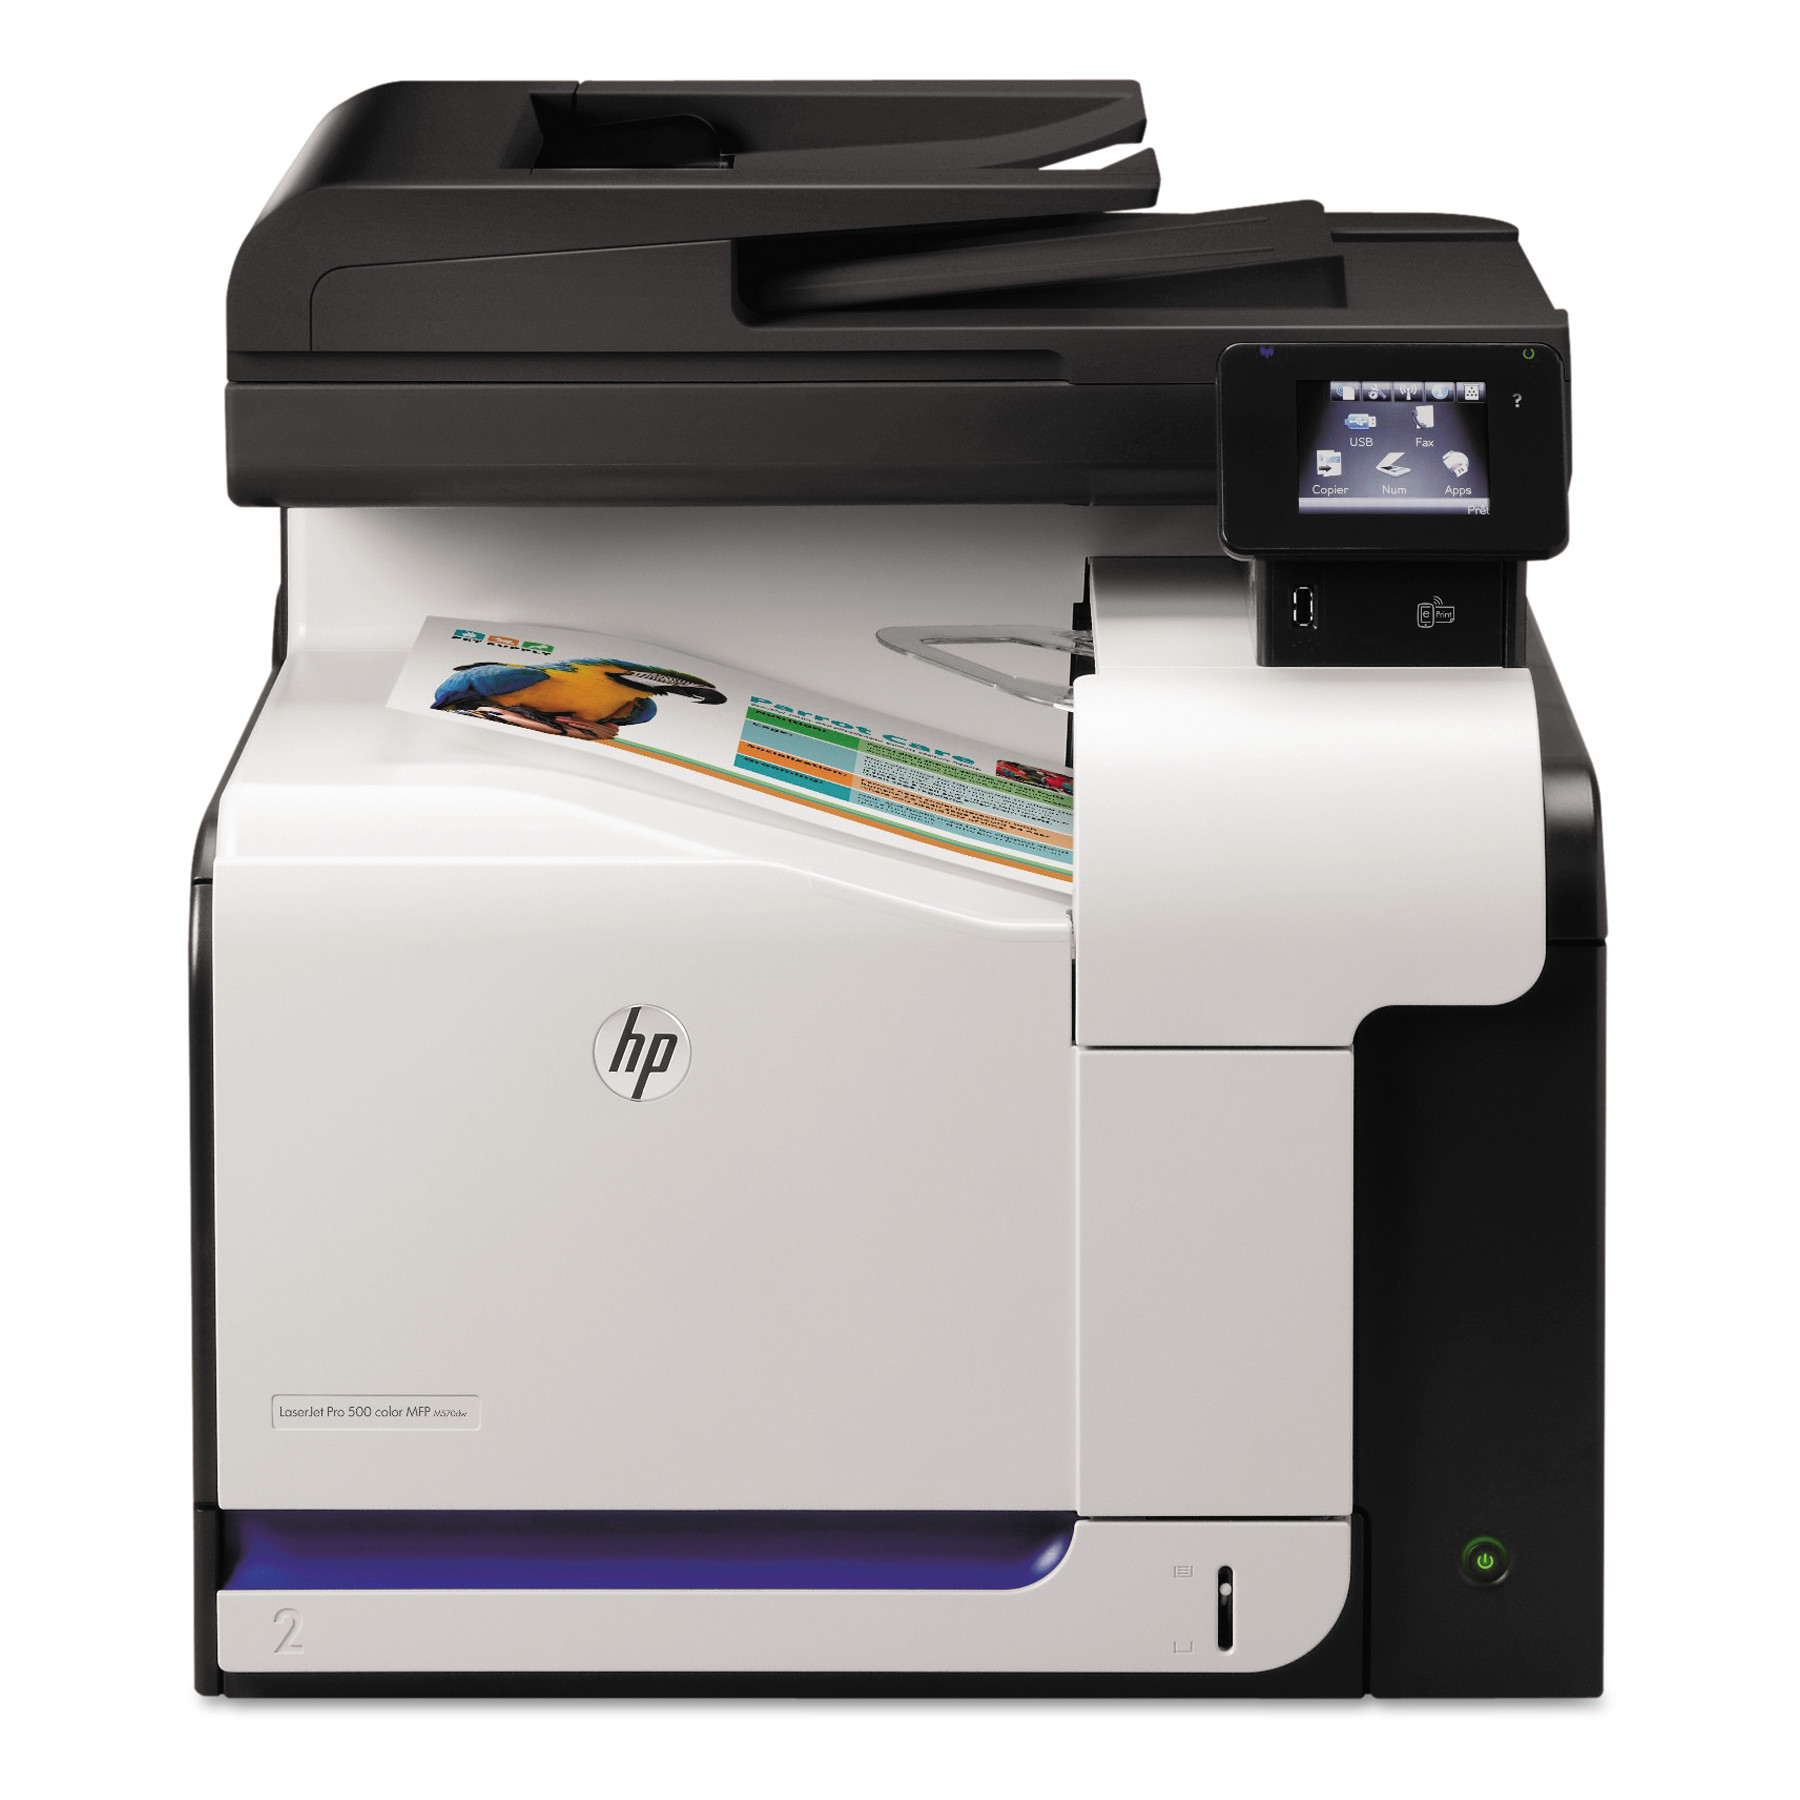 HP LaserJet Pro 500 Color MFP M570dn Laser Printer, Copy/Fax/Print/